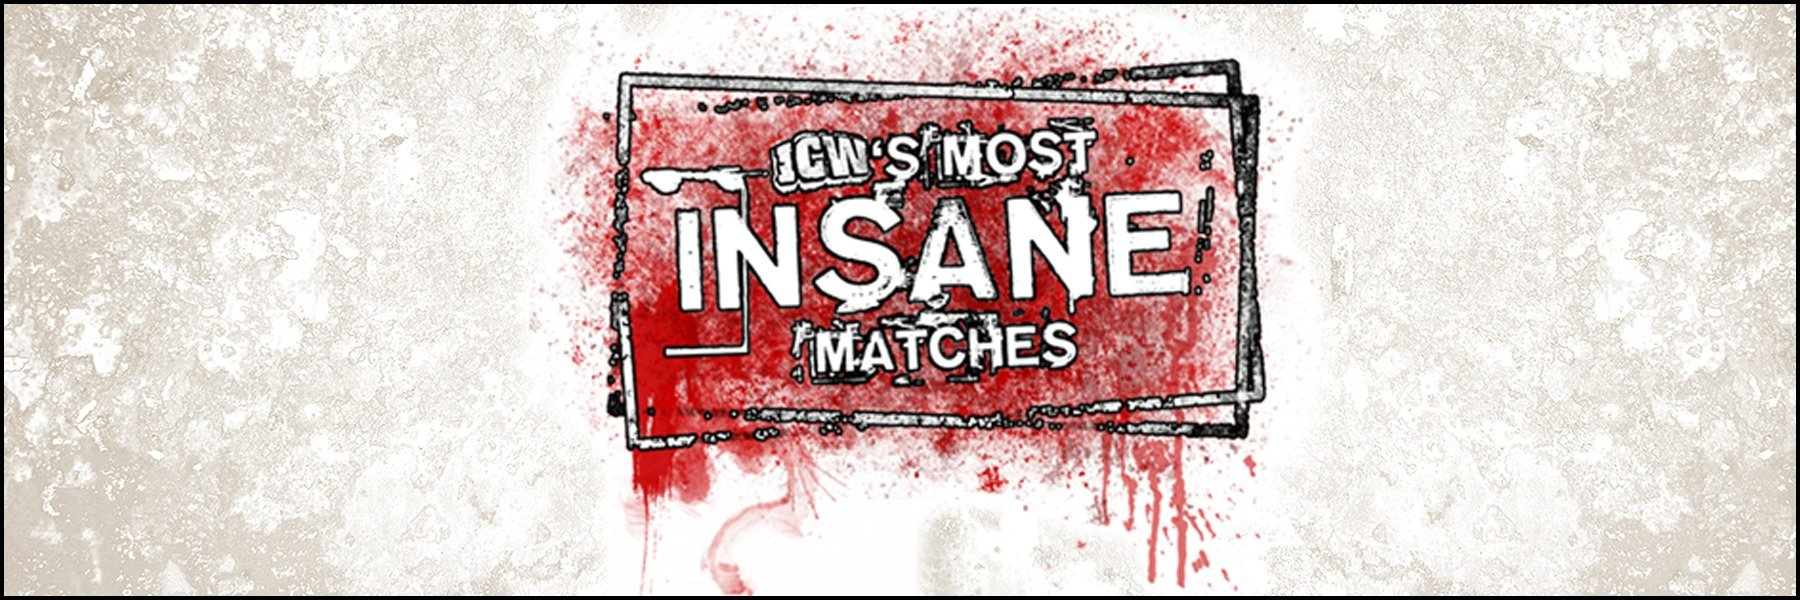 Look back at some unbelievable matches in ICW history!